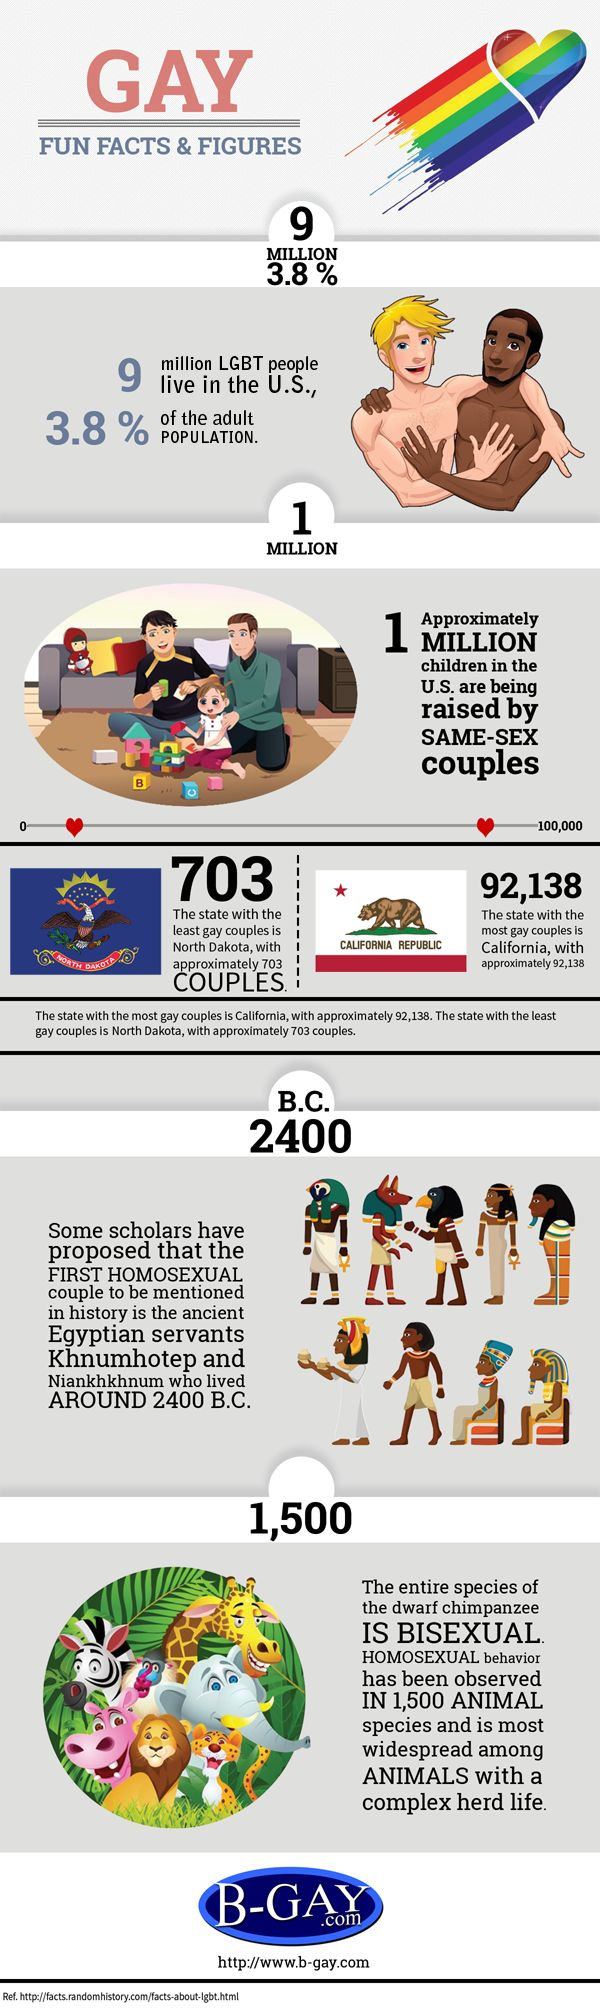 Interesting facts gay marriage